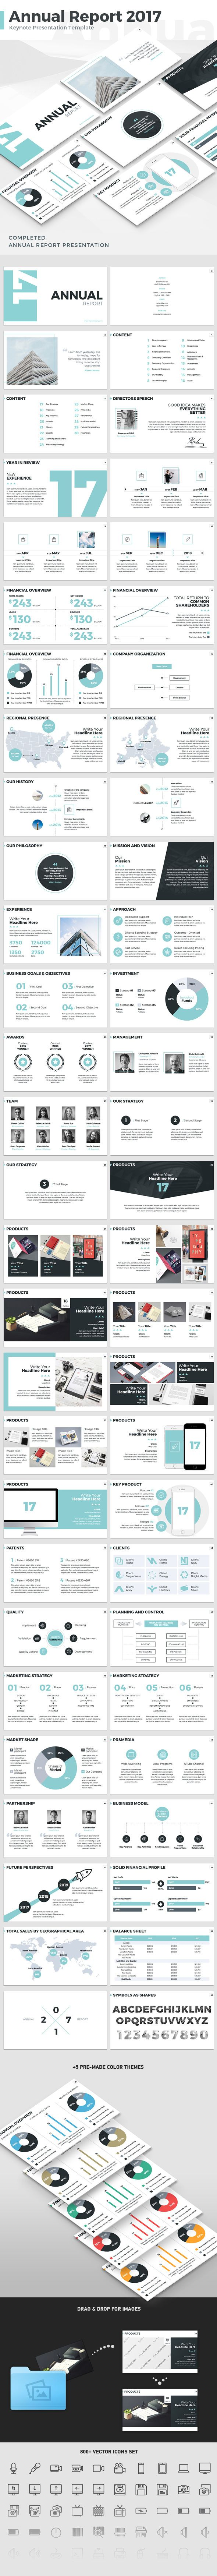 #Annual #Report 2017 - Keynote Template - #Keynote #Templates #Presentation Templates Download here: https://graphicriver.net/item/annual-report-2017-keynote-template/19075912?ref=alena994